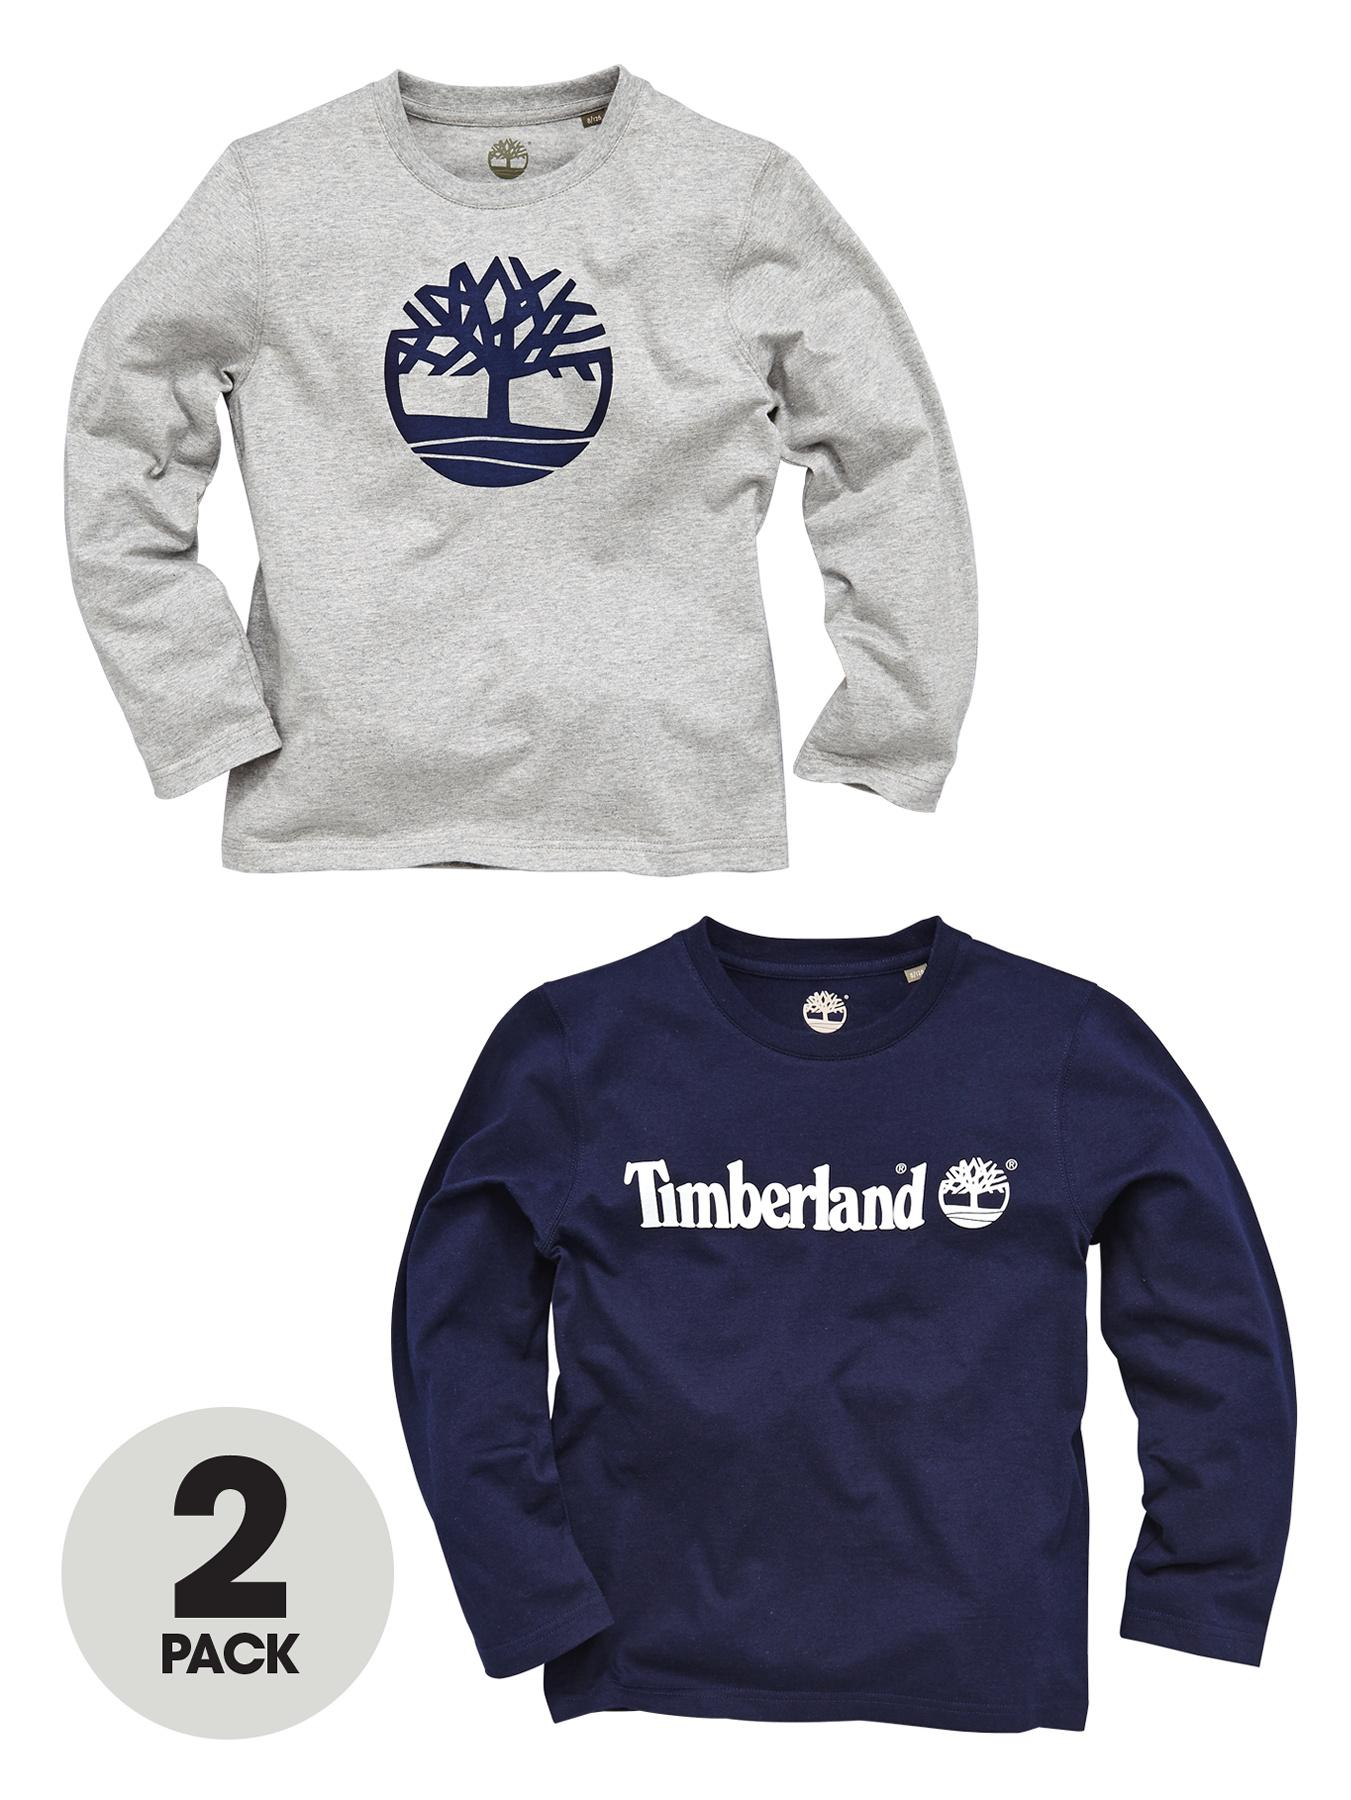 Long Sleeve T-shirts (2 pack), Navy